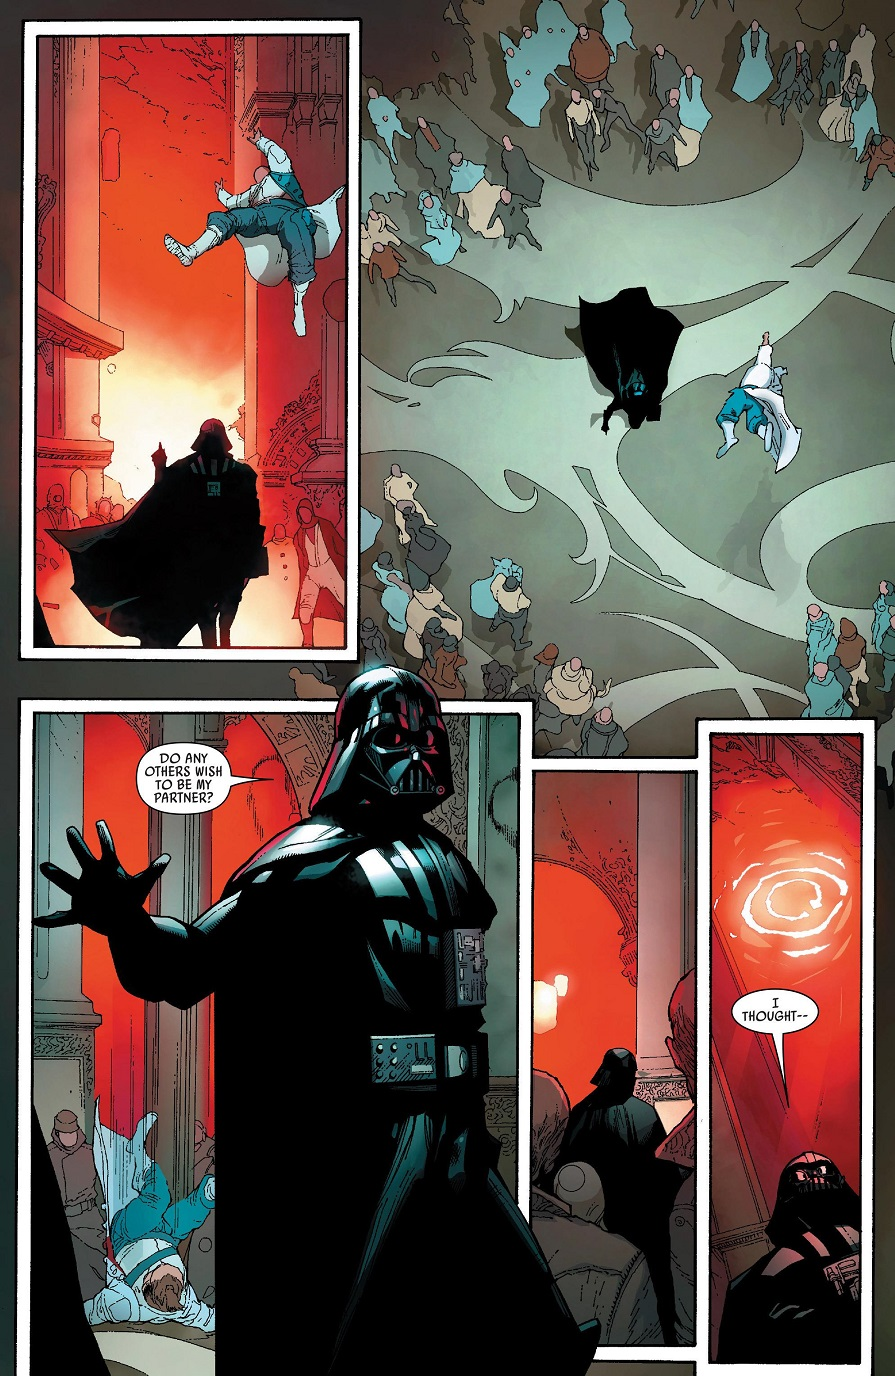 a681a95d The 6 Most Badass Moments From the Darth Vader Comic | Henchman-4-Hire